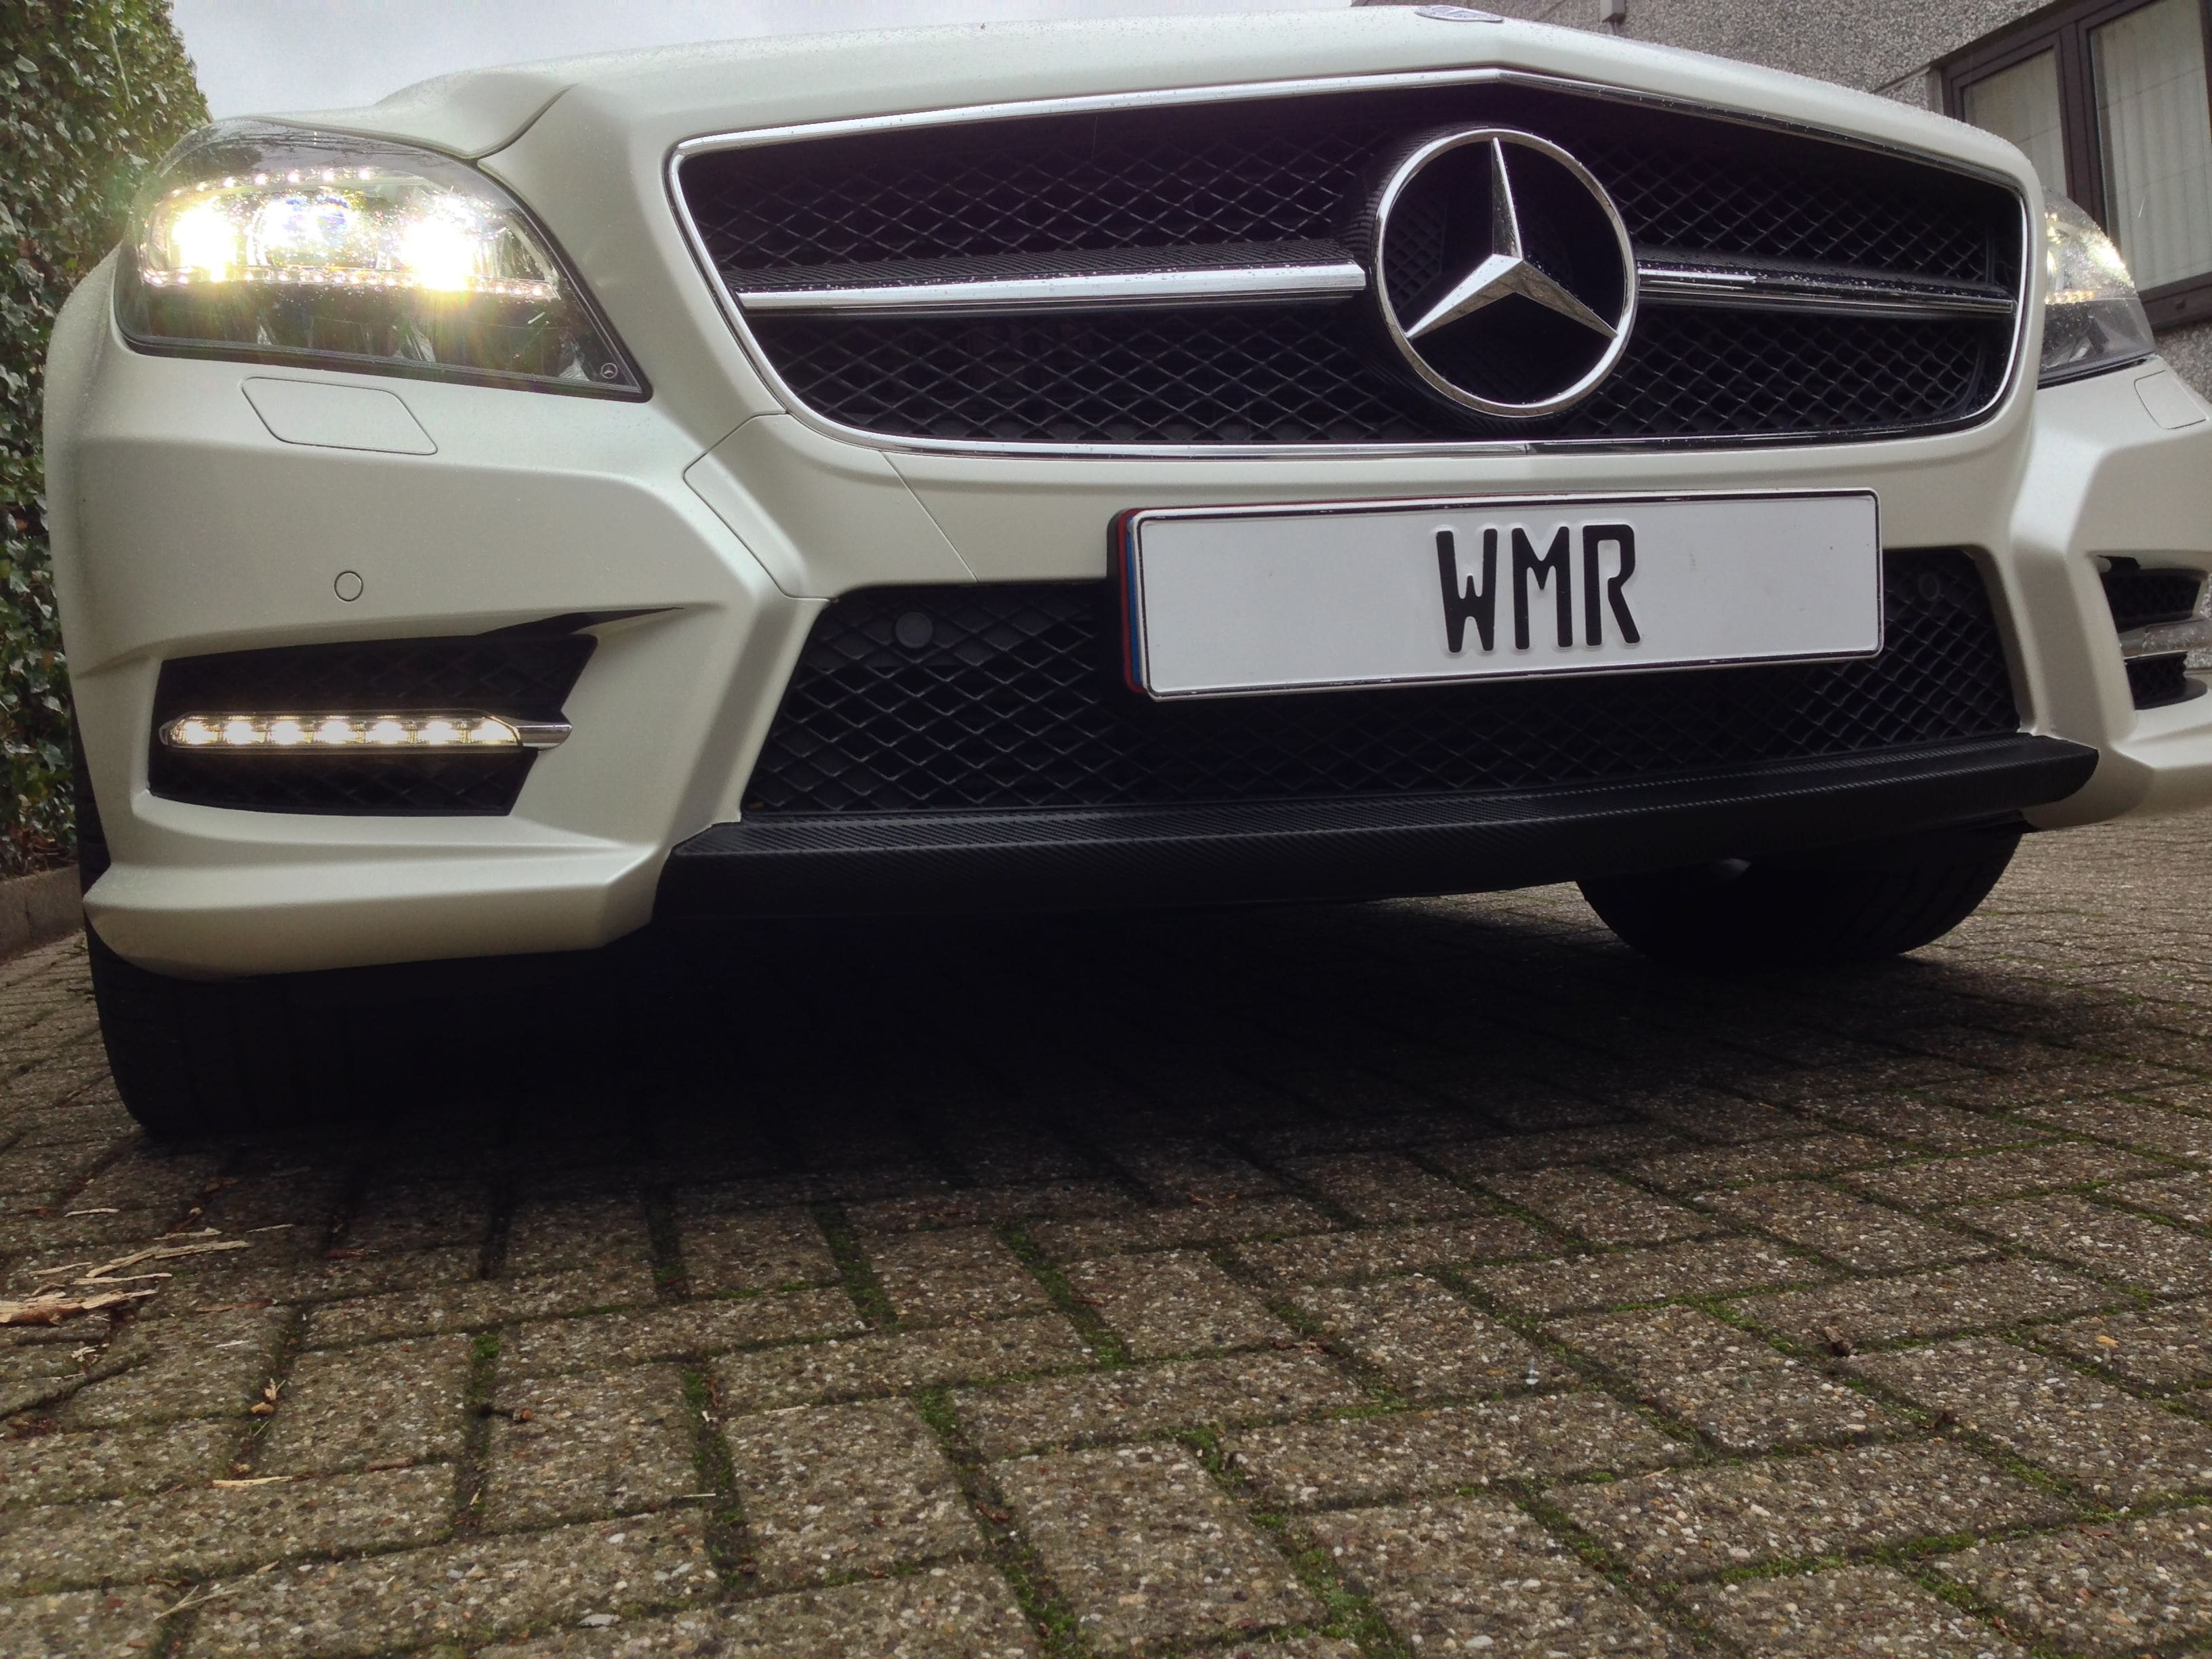 Mercedes CLS met White Satin Pearl Wrap, Carwrapping door Wrapmyride.nu Foto-nr:6207, ©2020